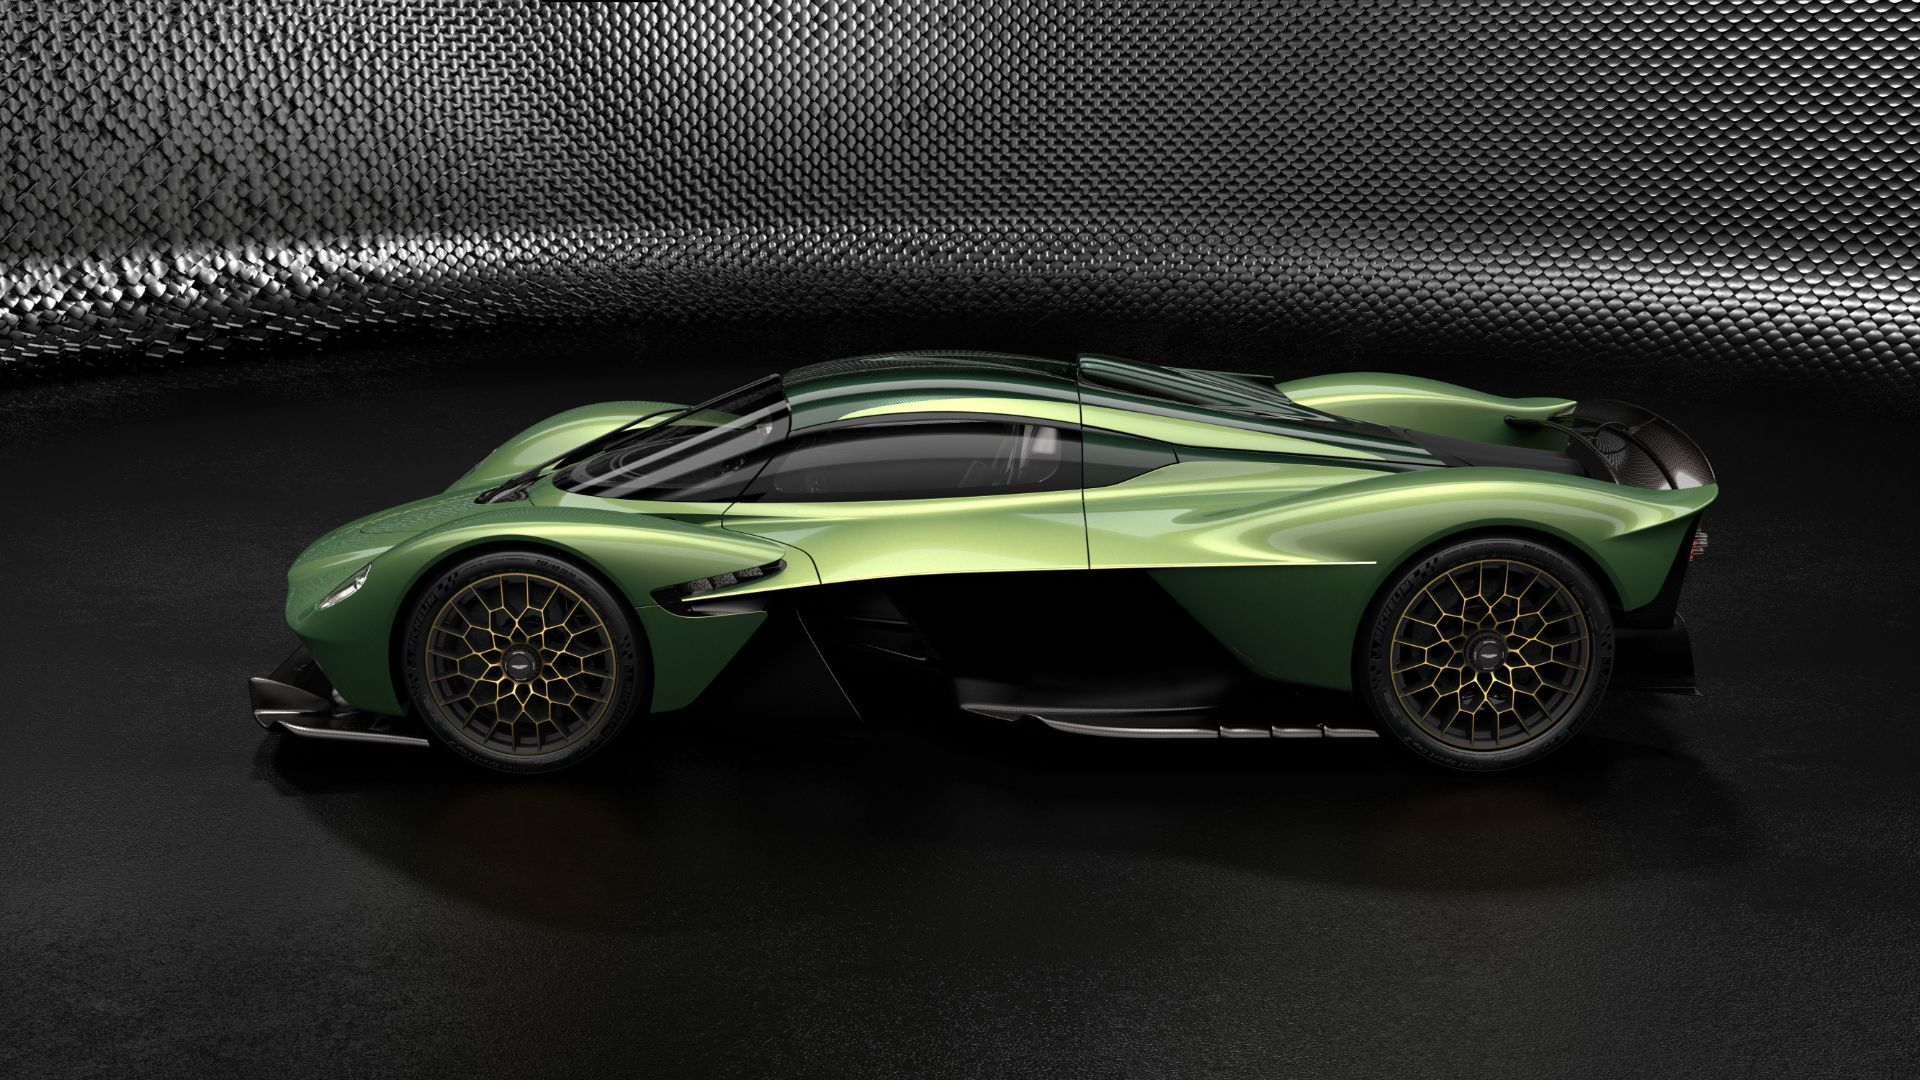 aston martin valkyrie gets new track pack and 'q' accessories